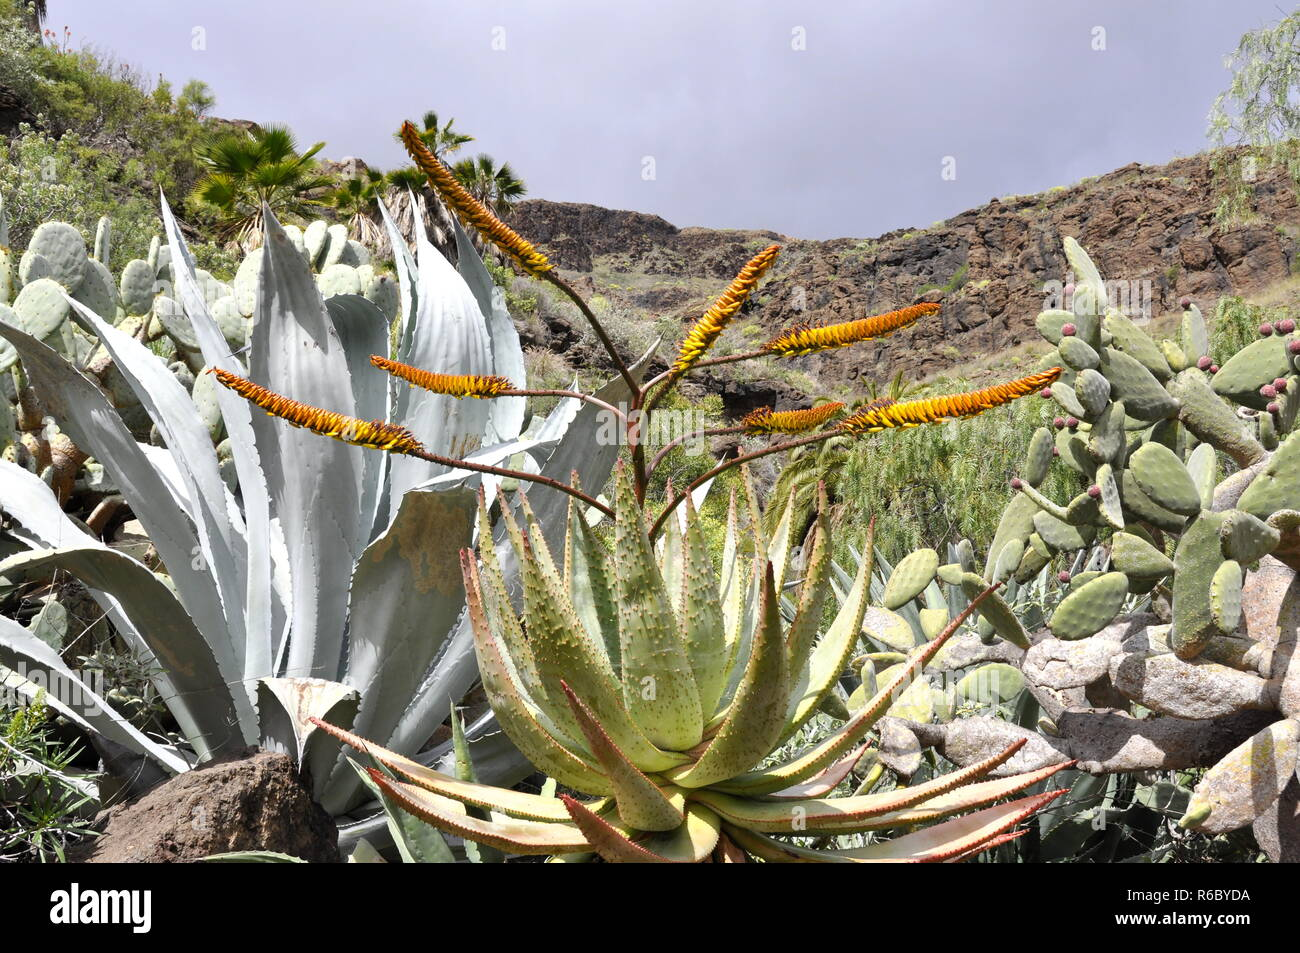 Landscape with cactuses and succulents in Gran Canaria - Stock Image